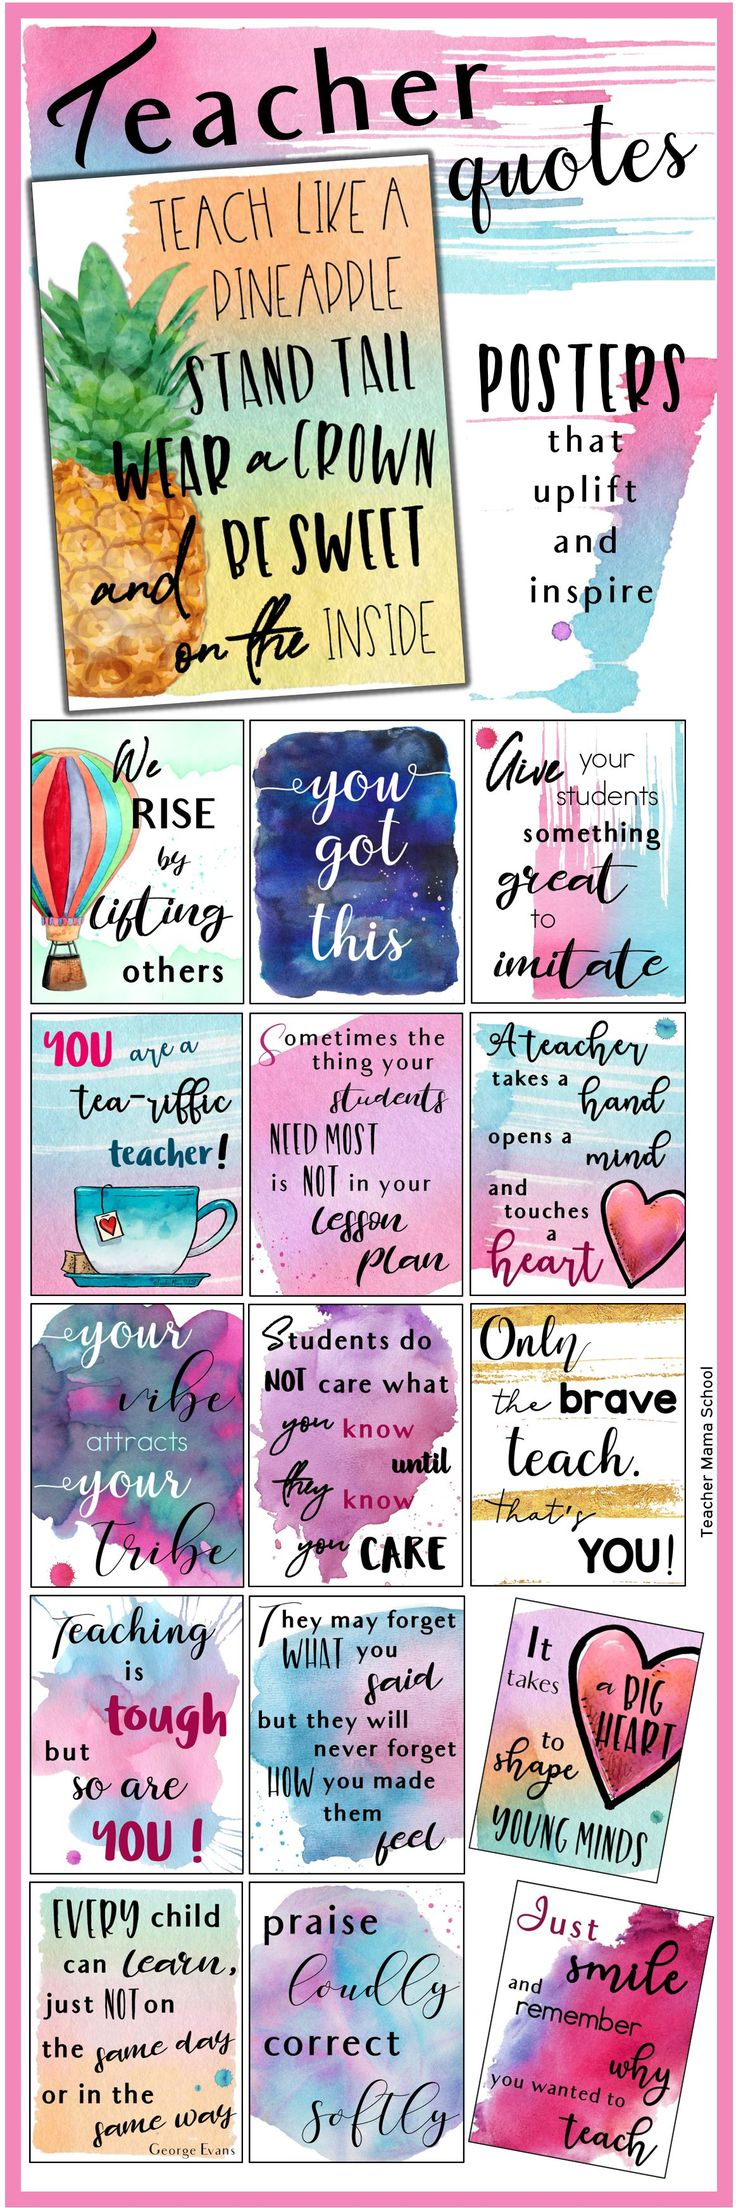 Teacher Quotes Posters to uplift, inspire and motivate teachers! In a beautiful watercolor theme. Just perfect to be put up in school areas where teachers hang out at such as the teacher's lounge. Also great to be given to your child's teachers as a Teacher Appreciation Day gift or as a note to fellow educators to remind them how precious their students are and how awesome they are as teachers!